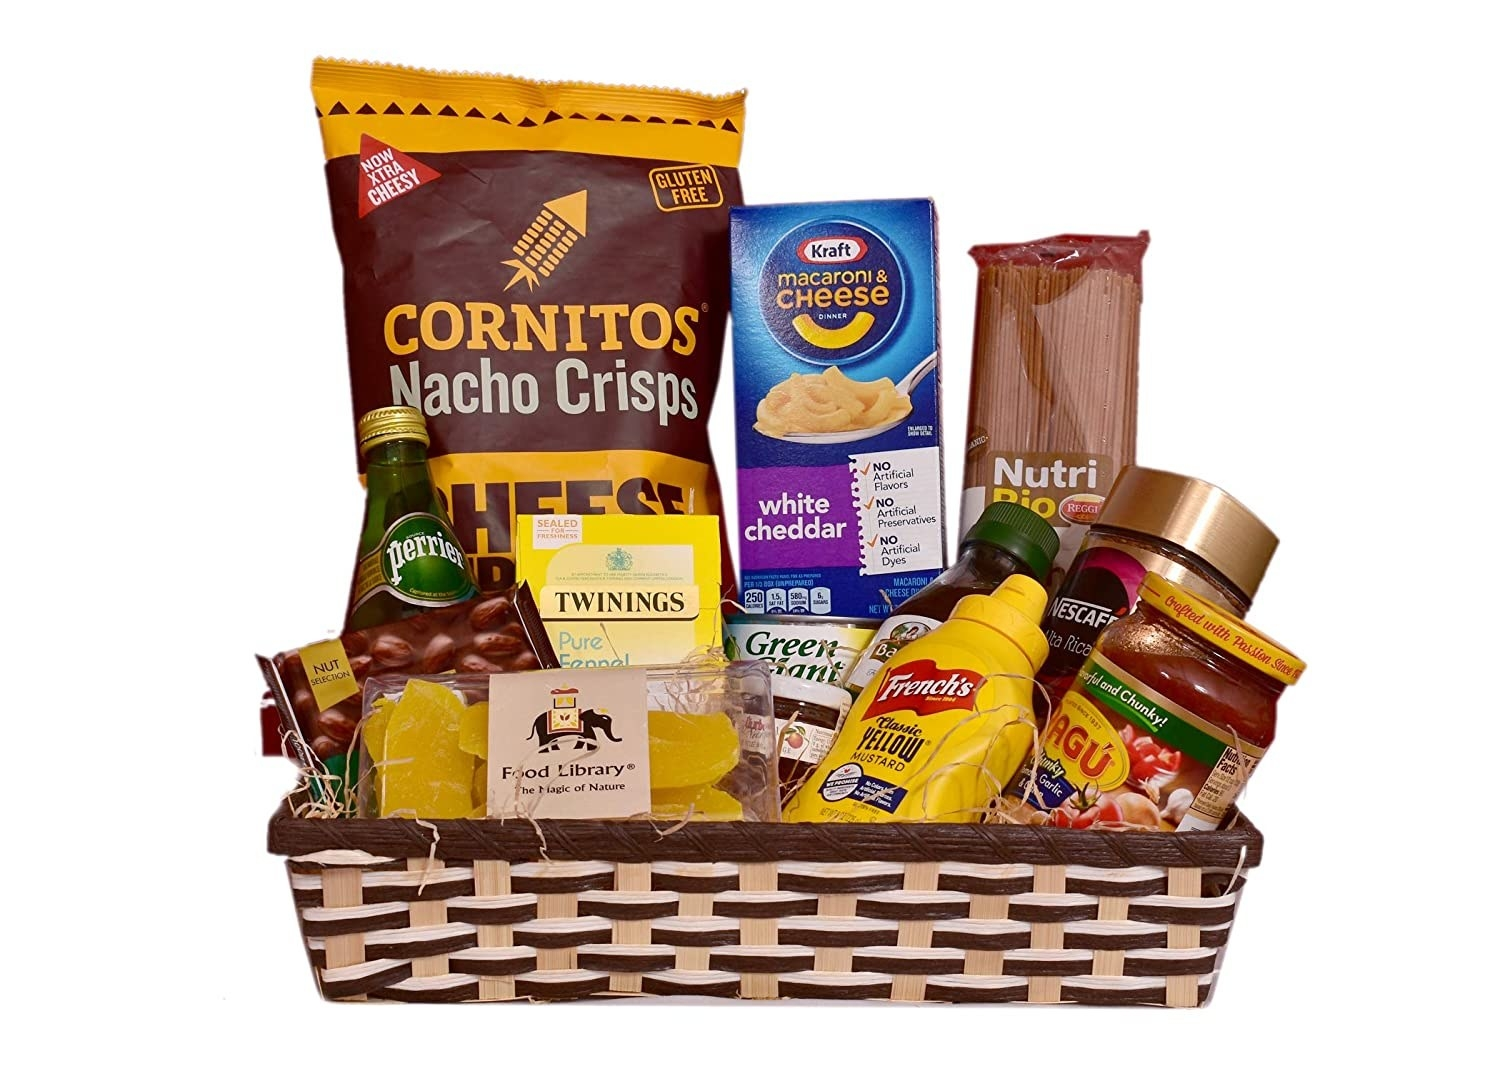 A snack basket containing nachos, pasta, tea, coffee, and other similar products.